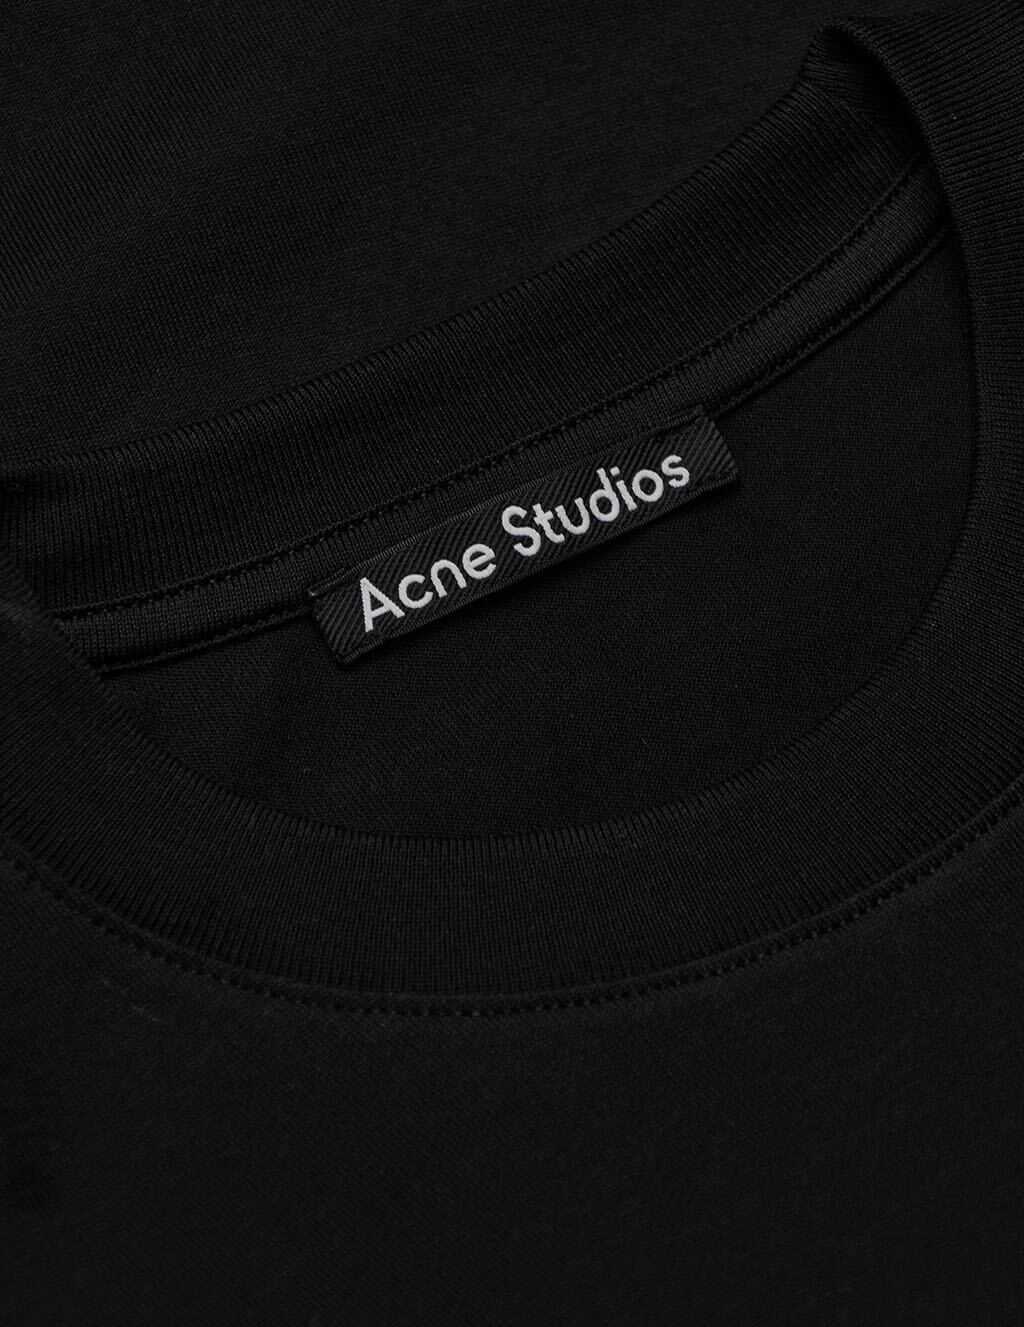 Acne Studios Unisex Black Eisen Face T-Shirt CL0087-900